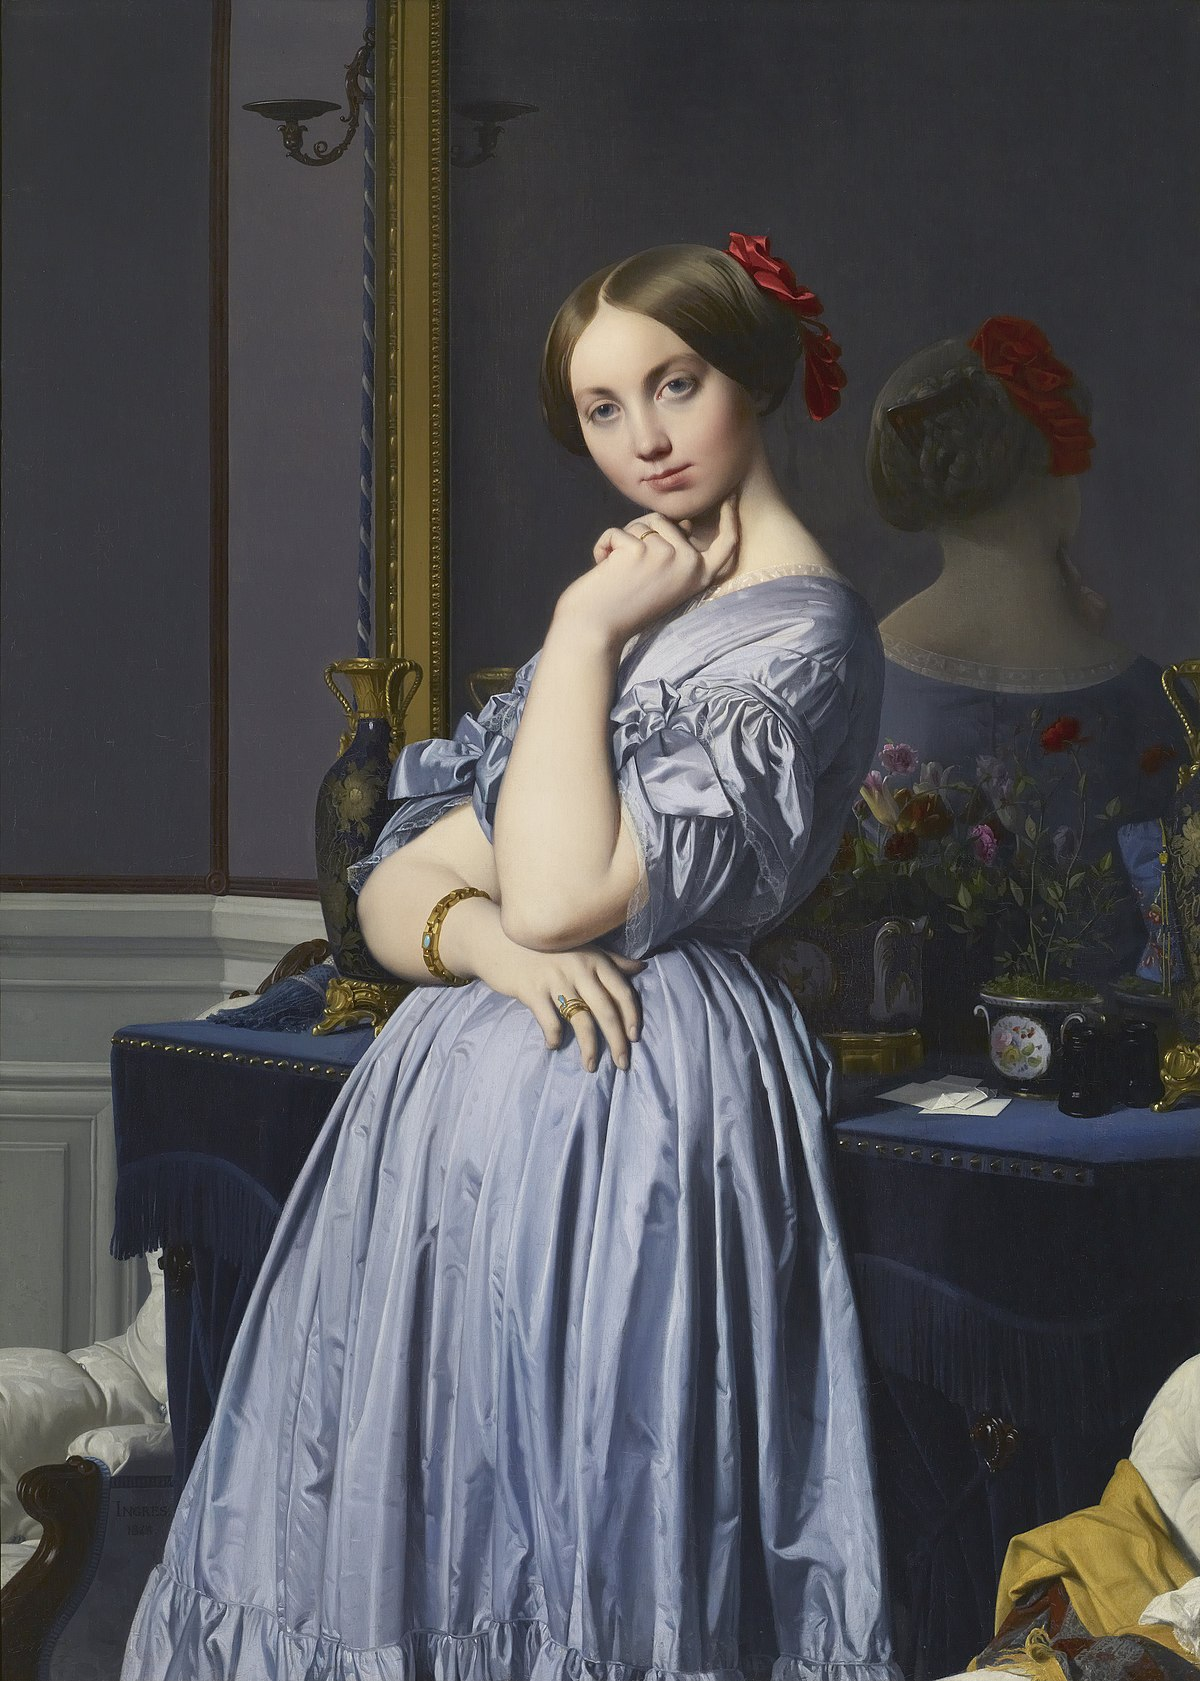 https://upload.wikimedia.org/wikipedia/commons/thumb/8/80/Jean-Auguste-Dominique_Ingres_-_Comtesse_d%27Haussonville_-_Google_Art_Project.jpg/1200px-Jean-Auguste-Dominique_Ingres_-_Comtesse_d%27Haussonville_-_Google_Art_Project.jpg